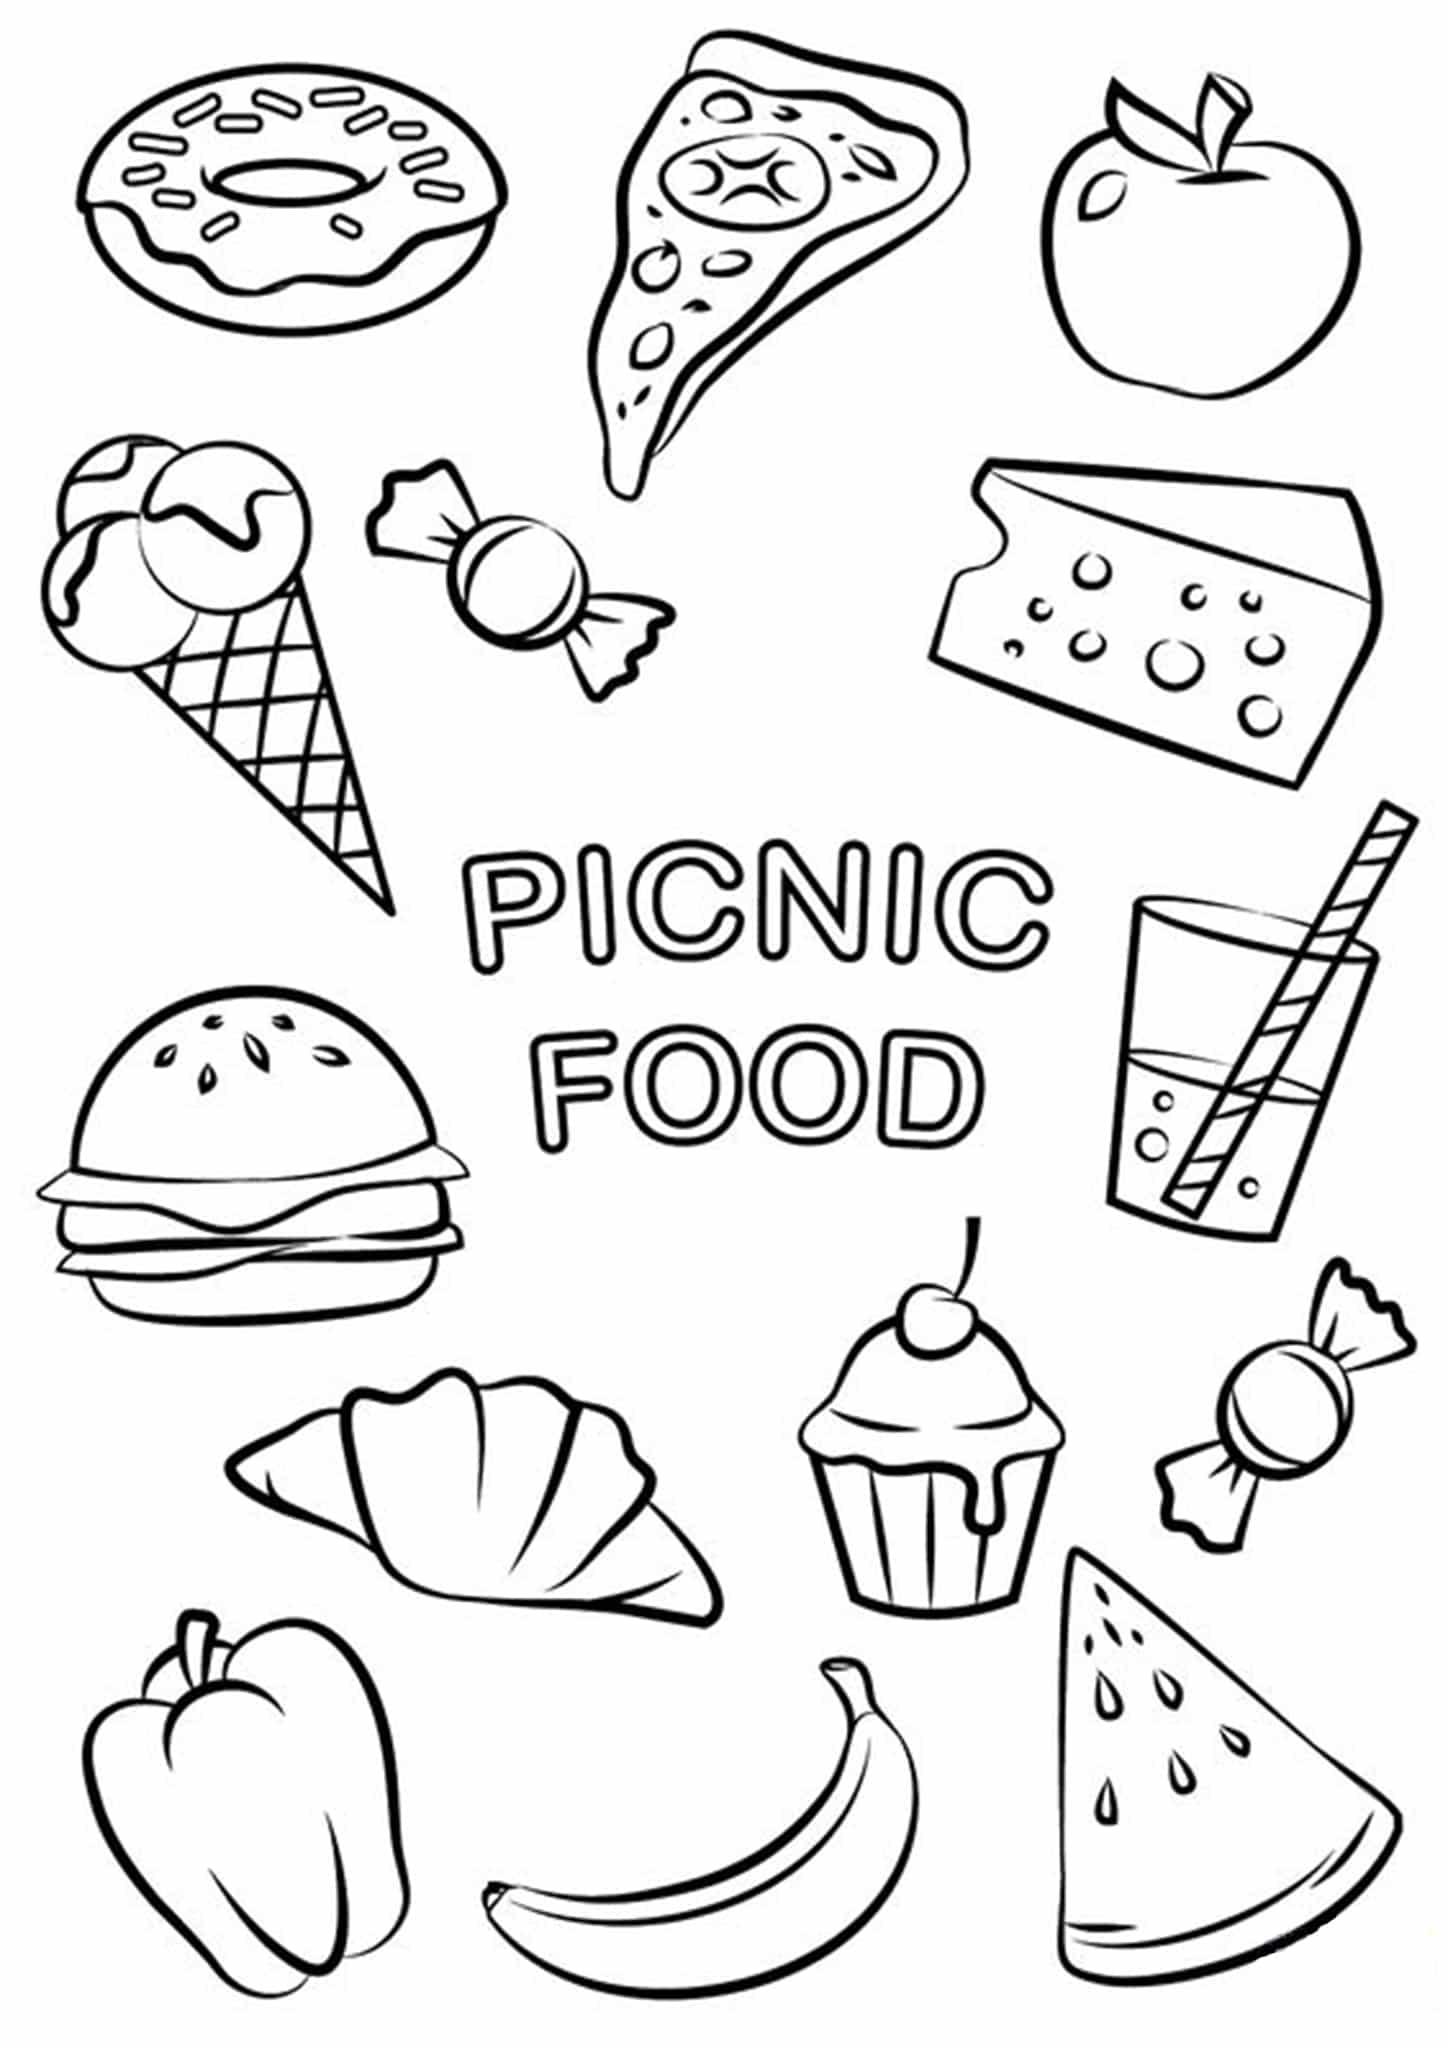 free food coloring pages to print picnic food coloring page free printable coloring pages free pages to print coloring food